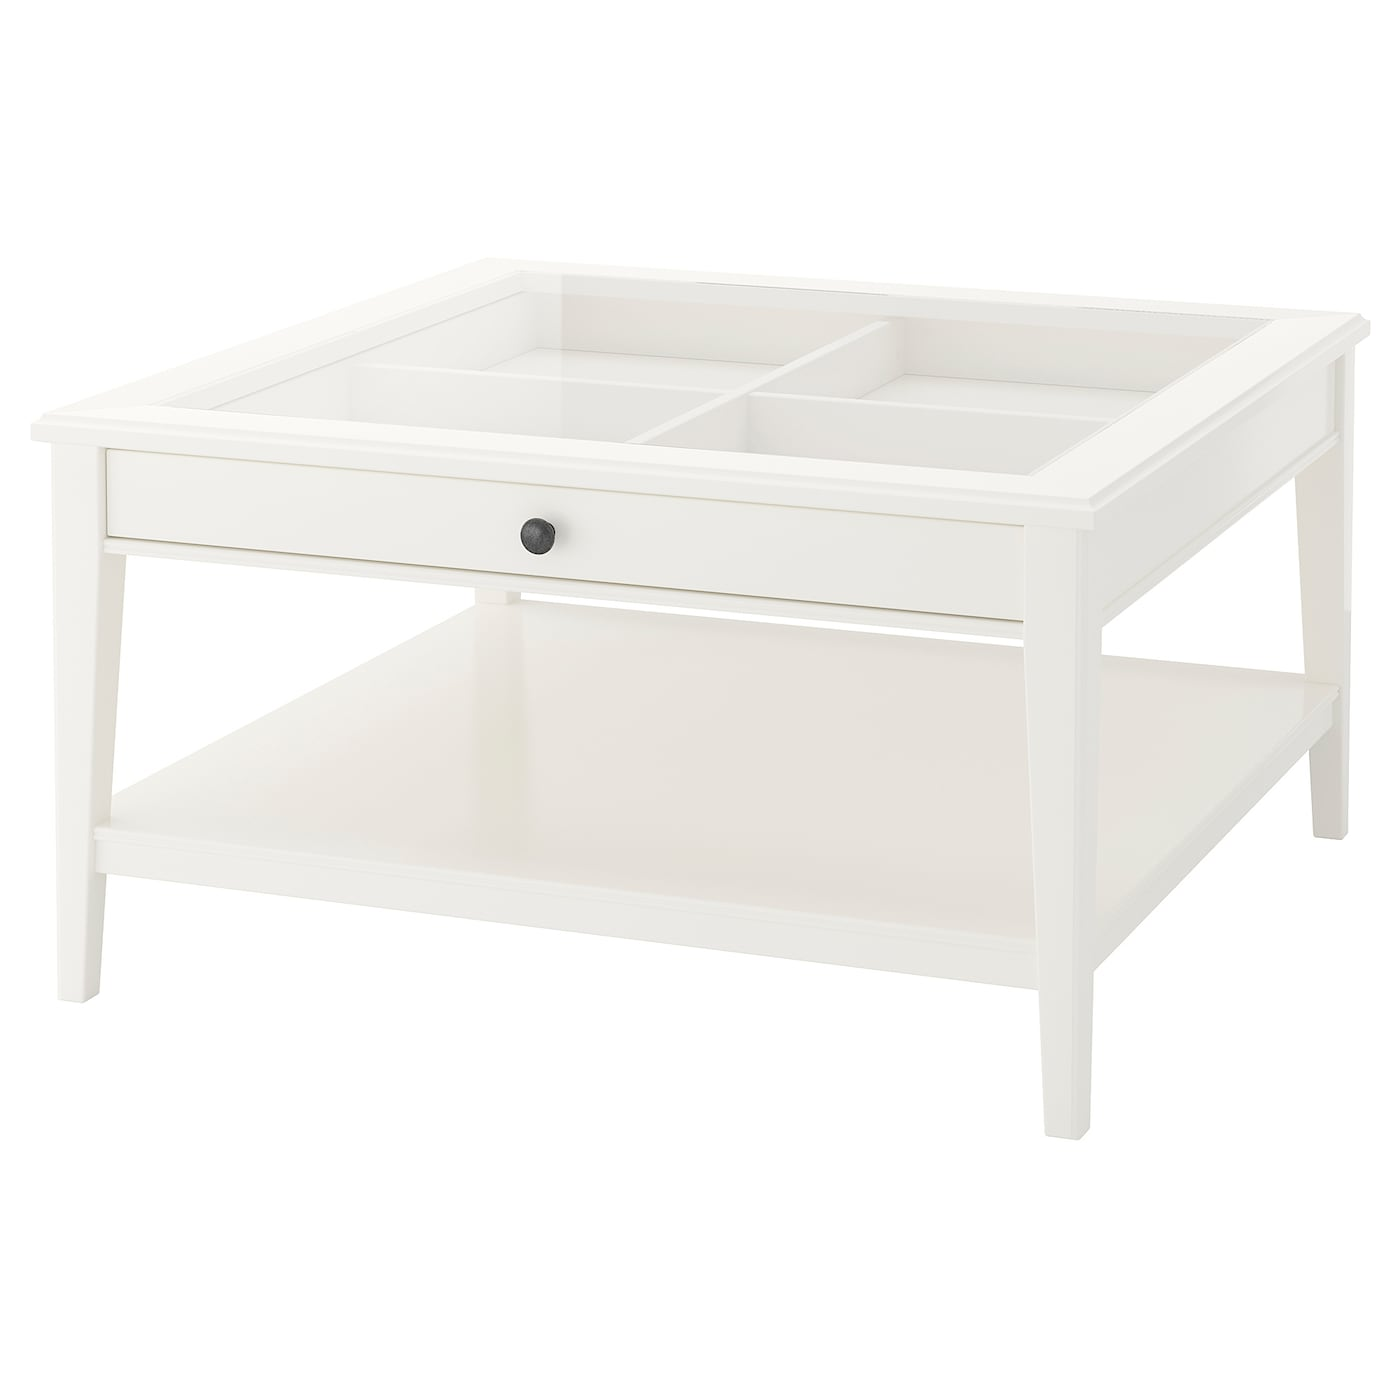 LIATORP Coffee Table, White, Glass, 36 5/8x36 5/8